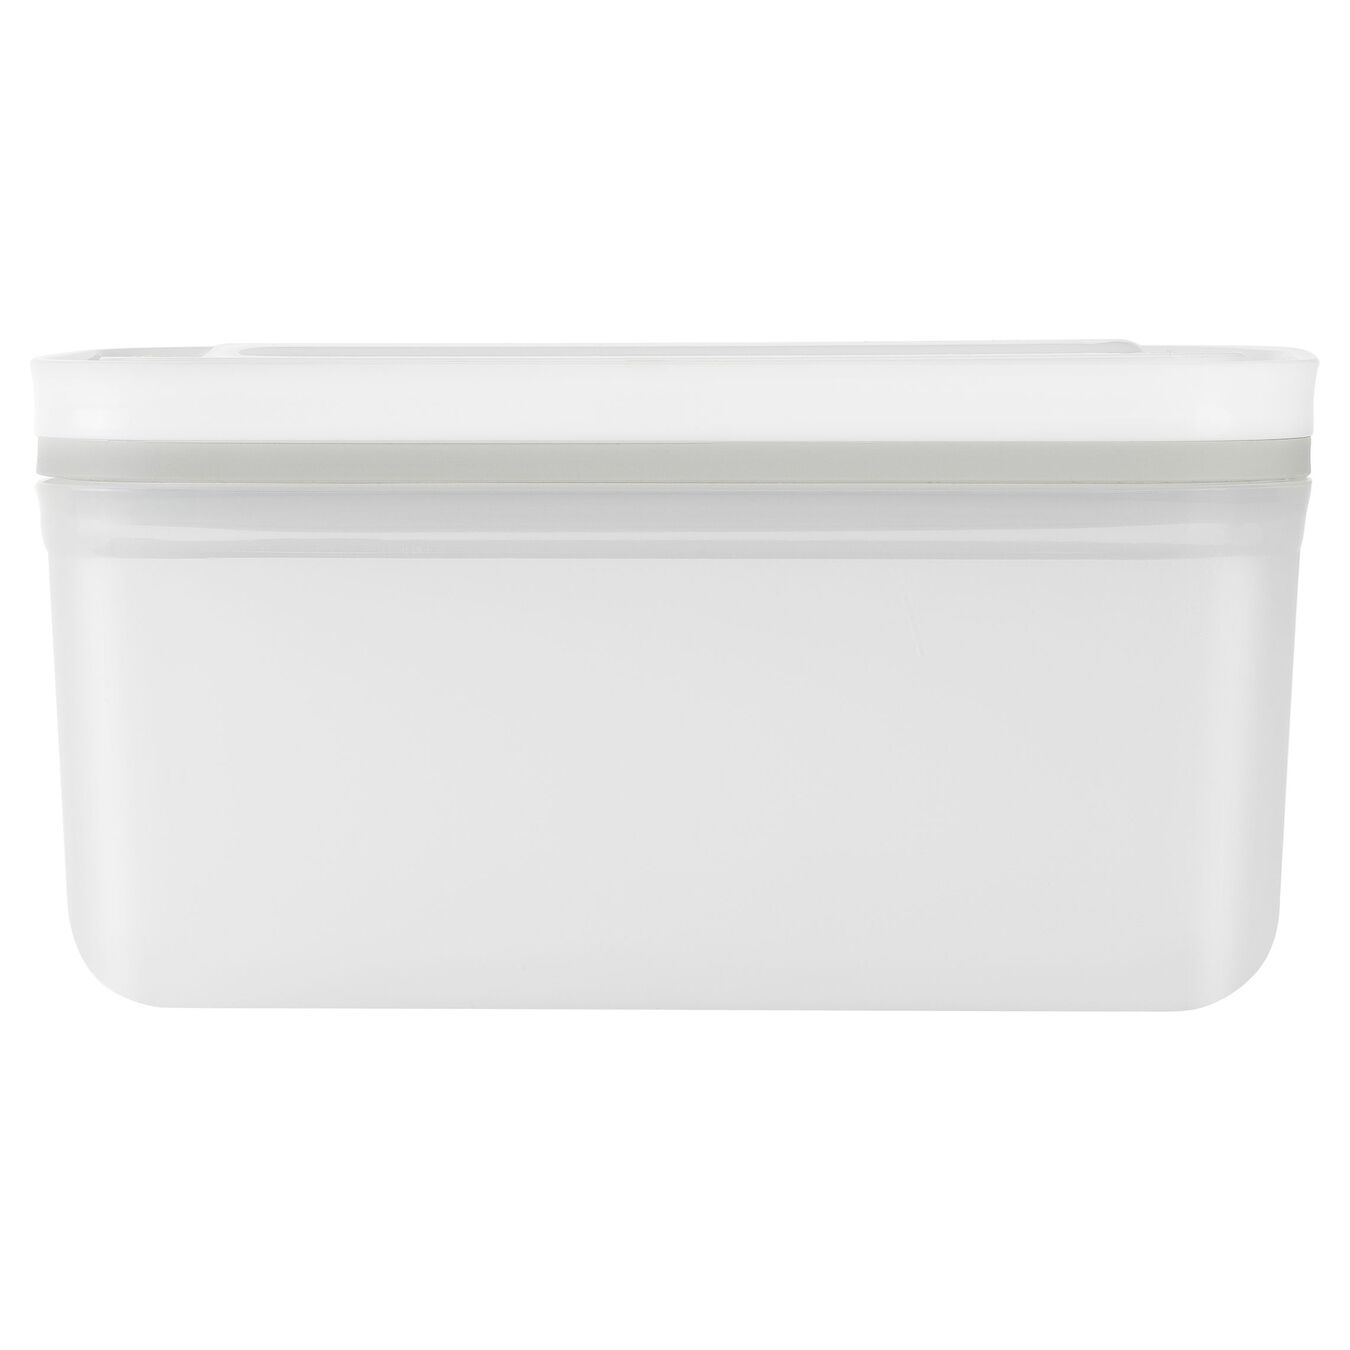 medium Vacuum Container, plastic, white,,large 3